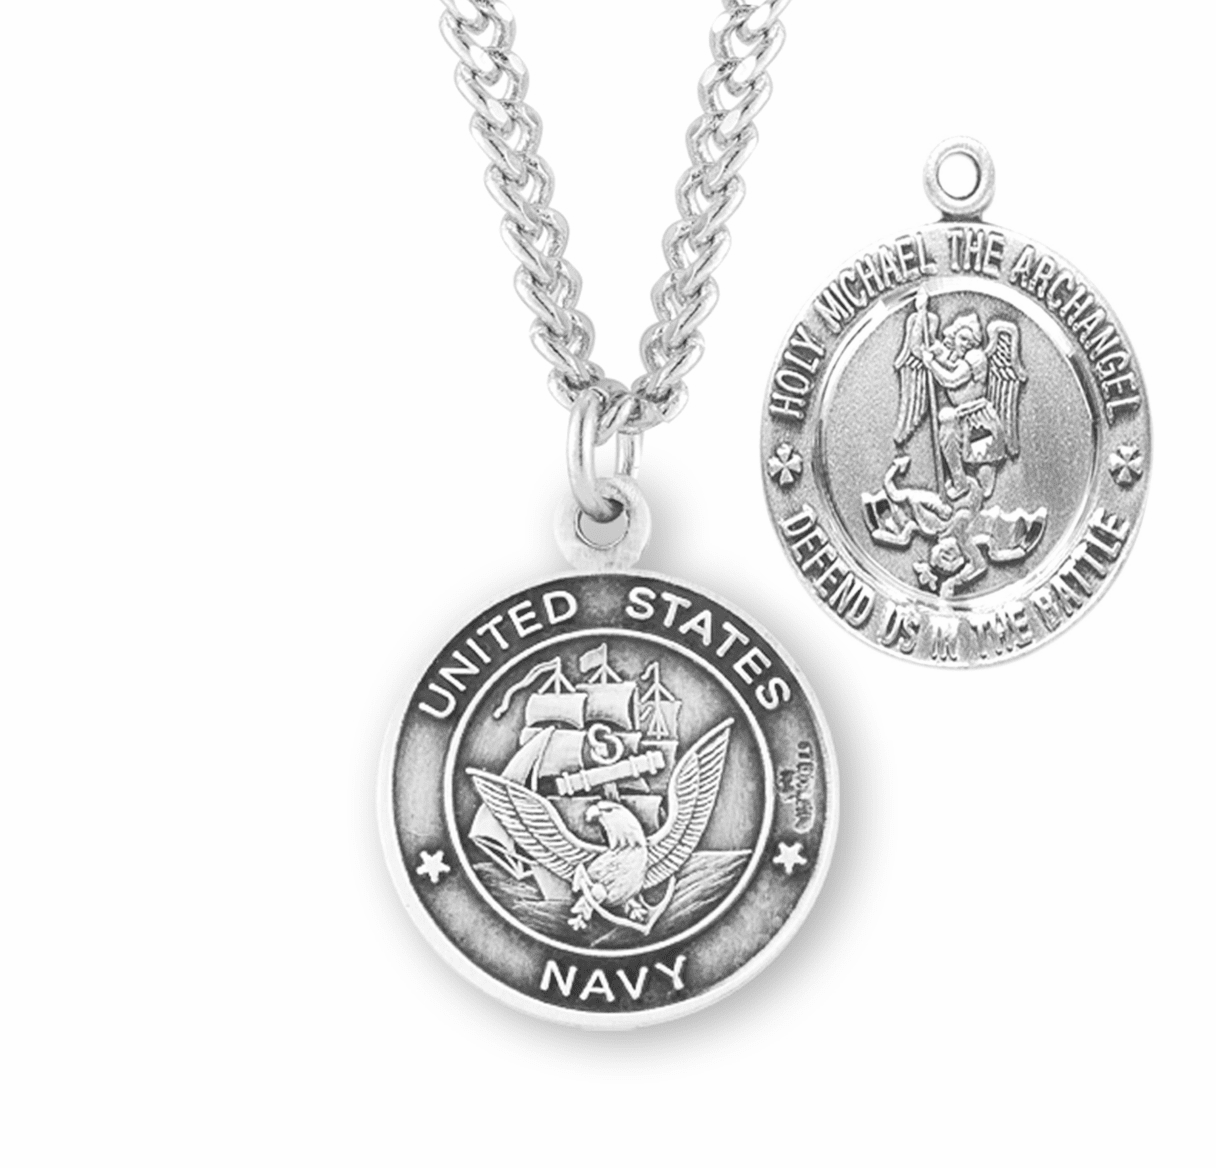 Military St Michael Navy Sterling Silver Medal Necklace by HMH Religious